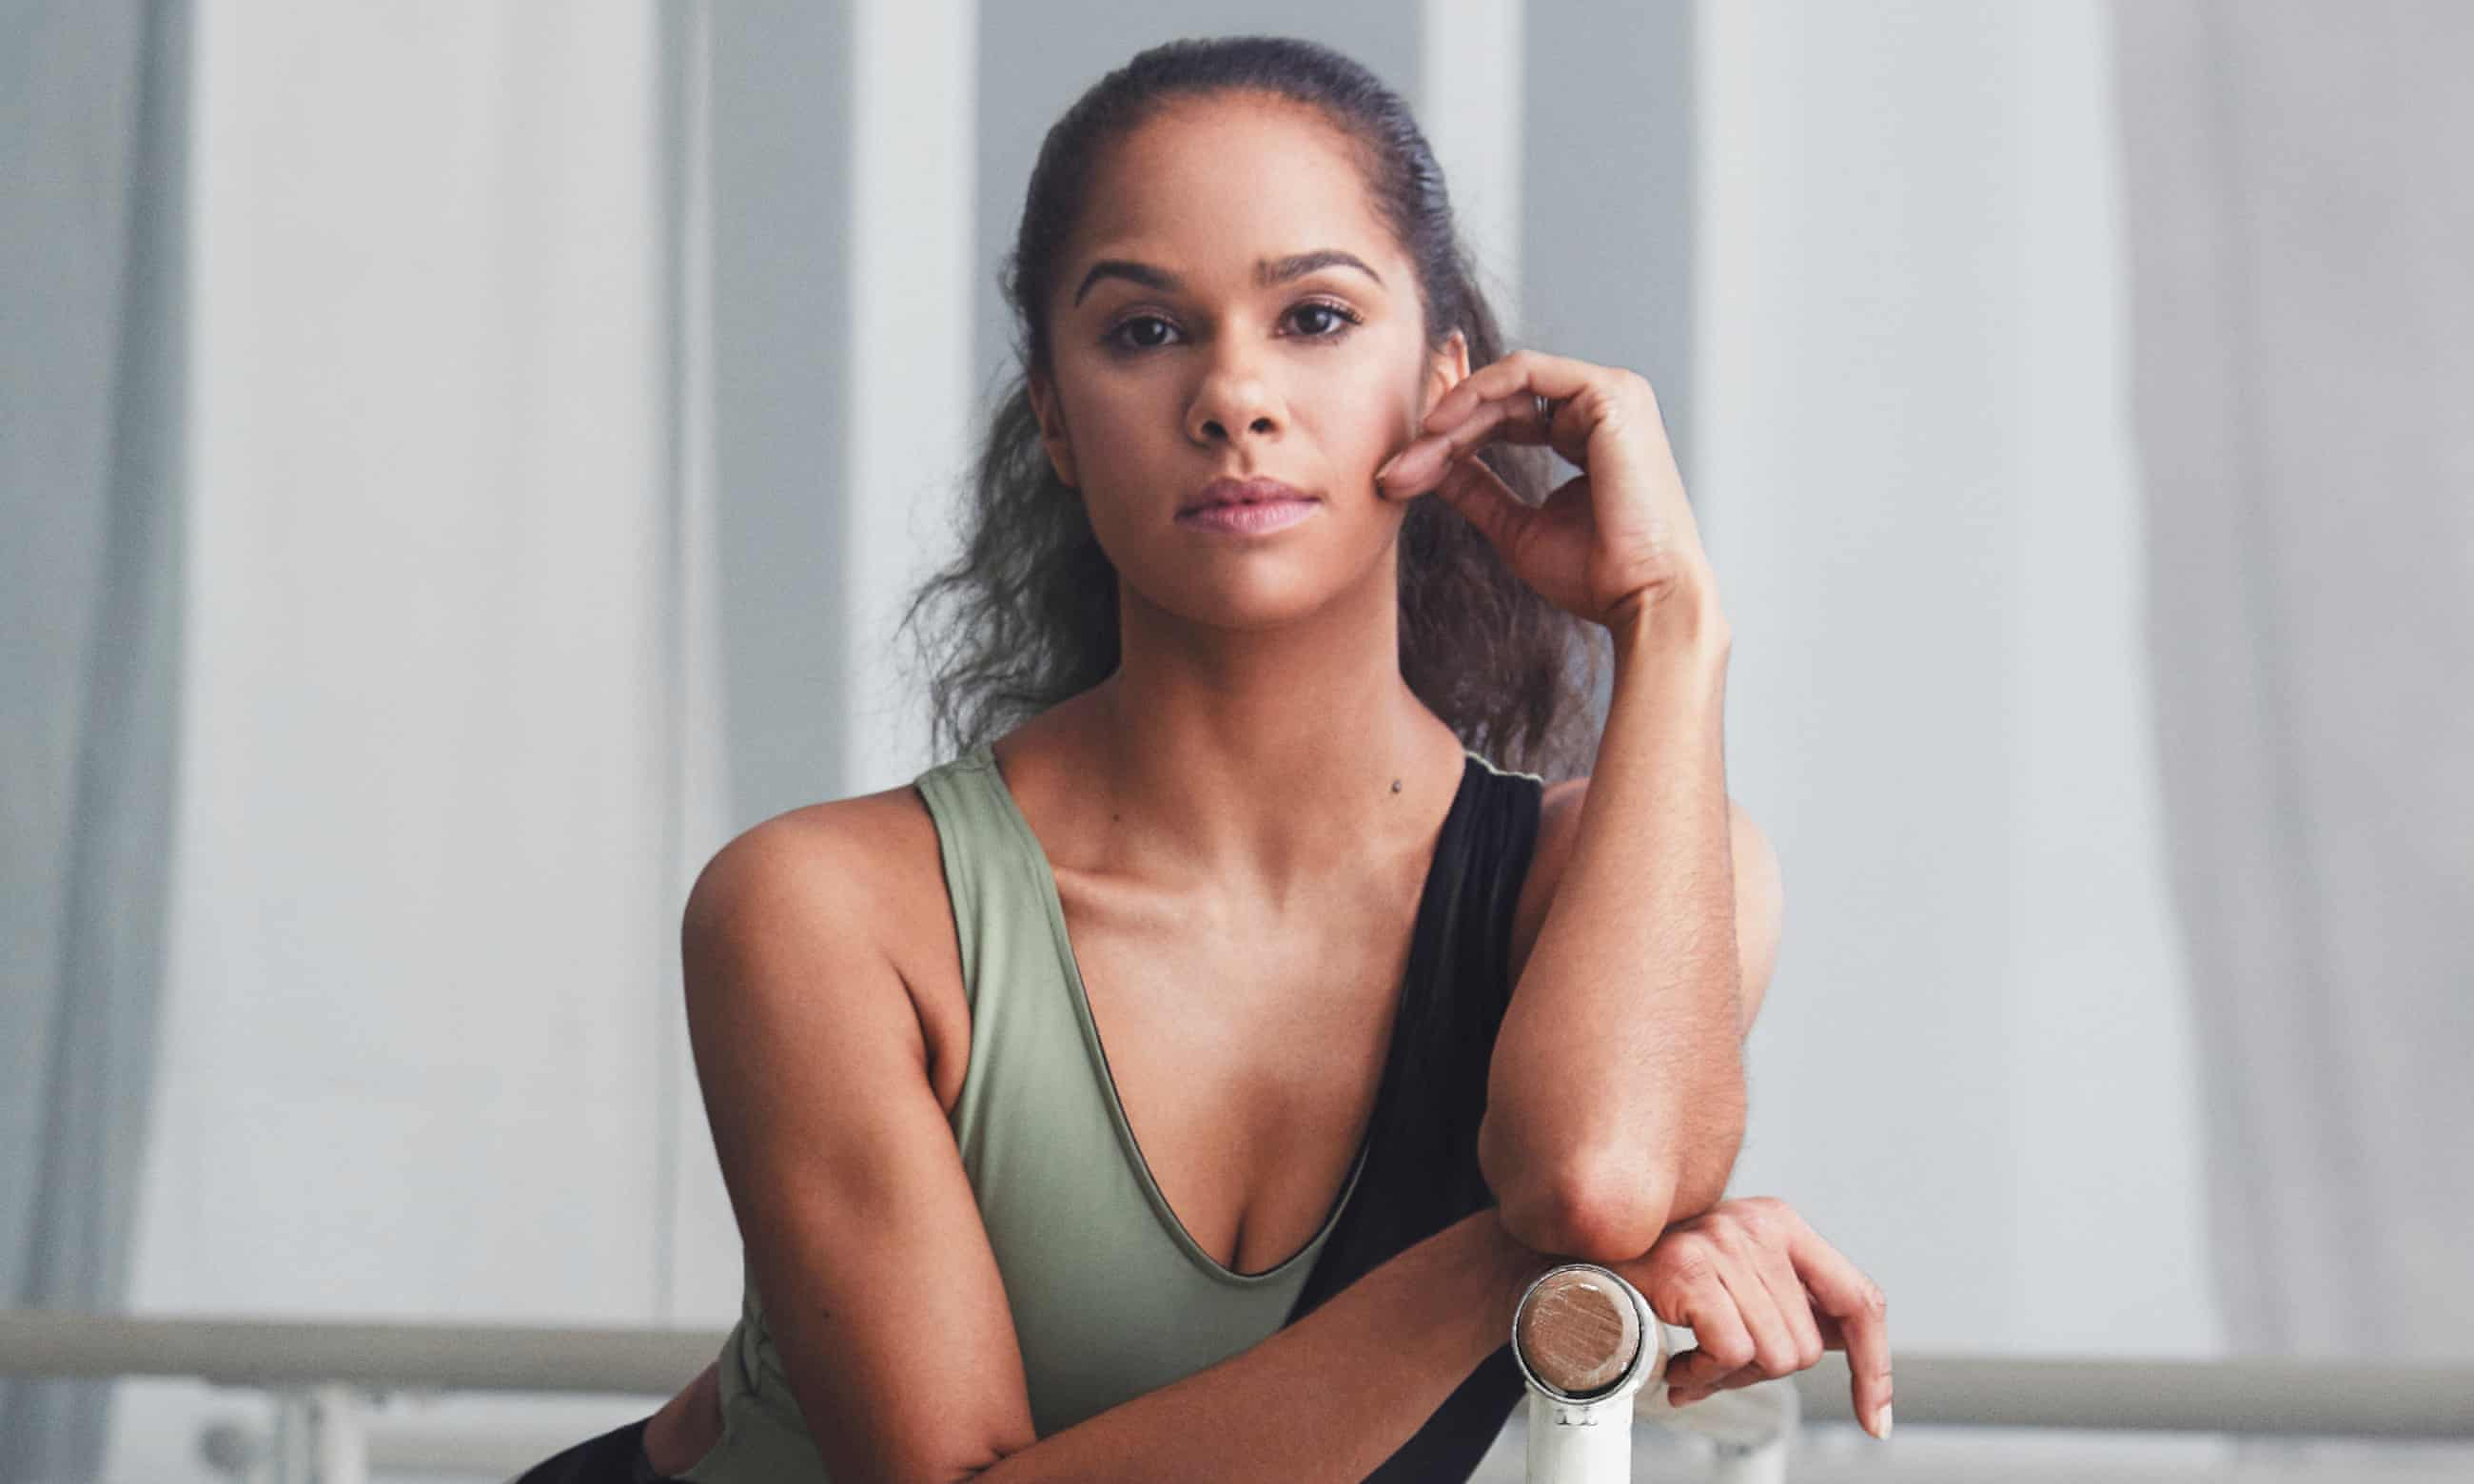 'I had this awakening' … Misty Copeland.